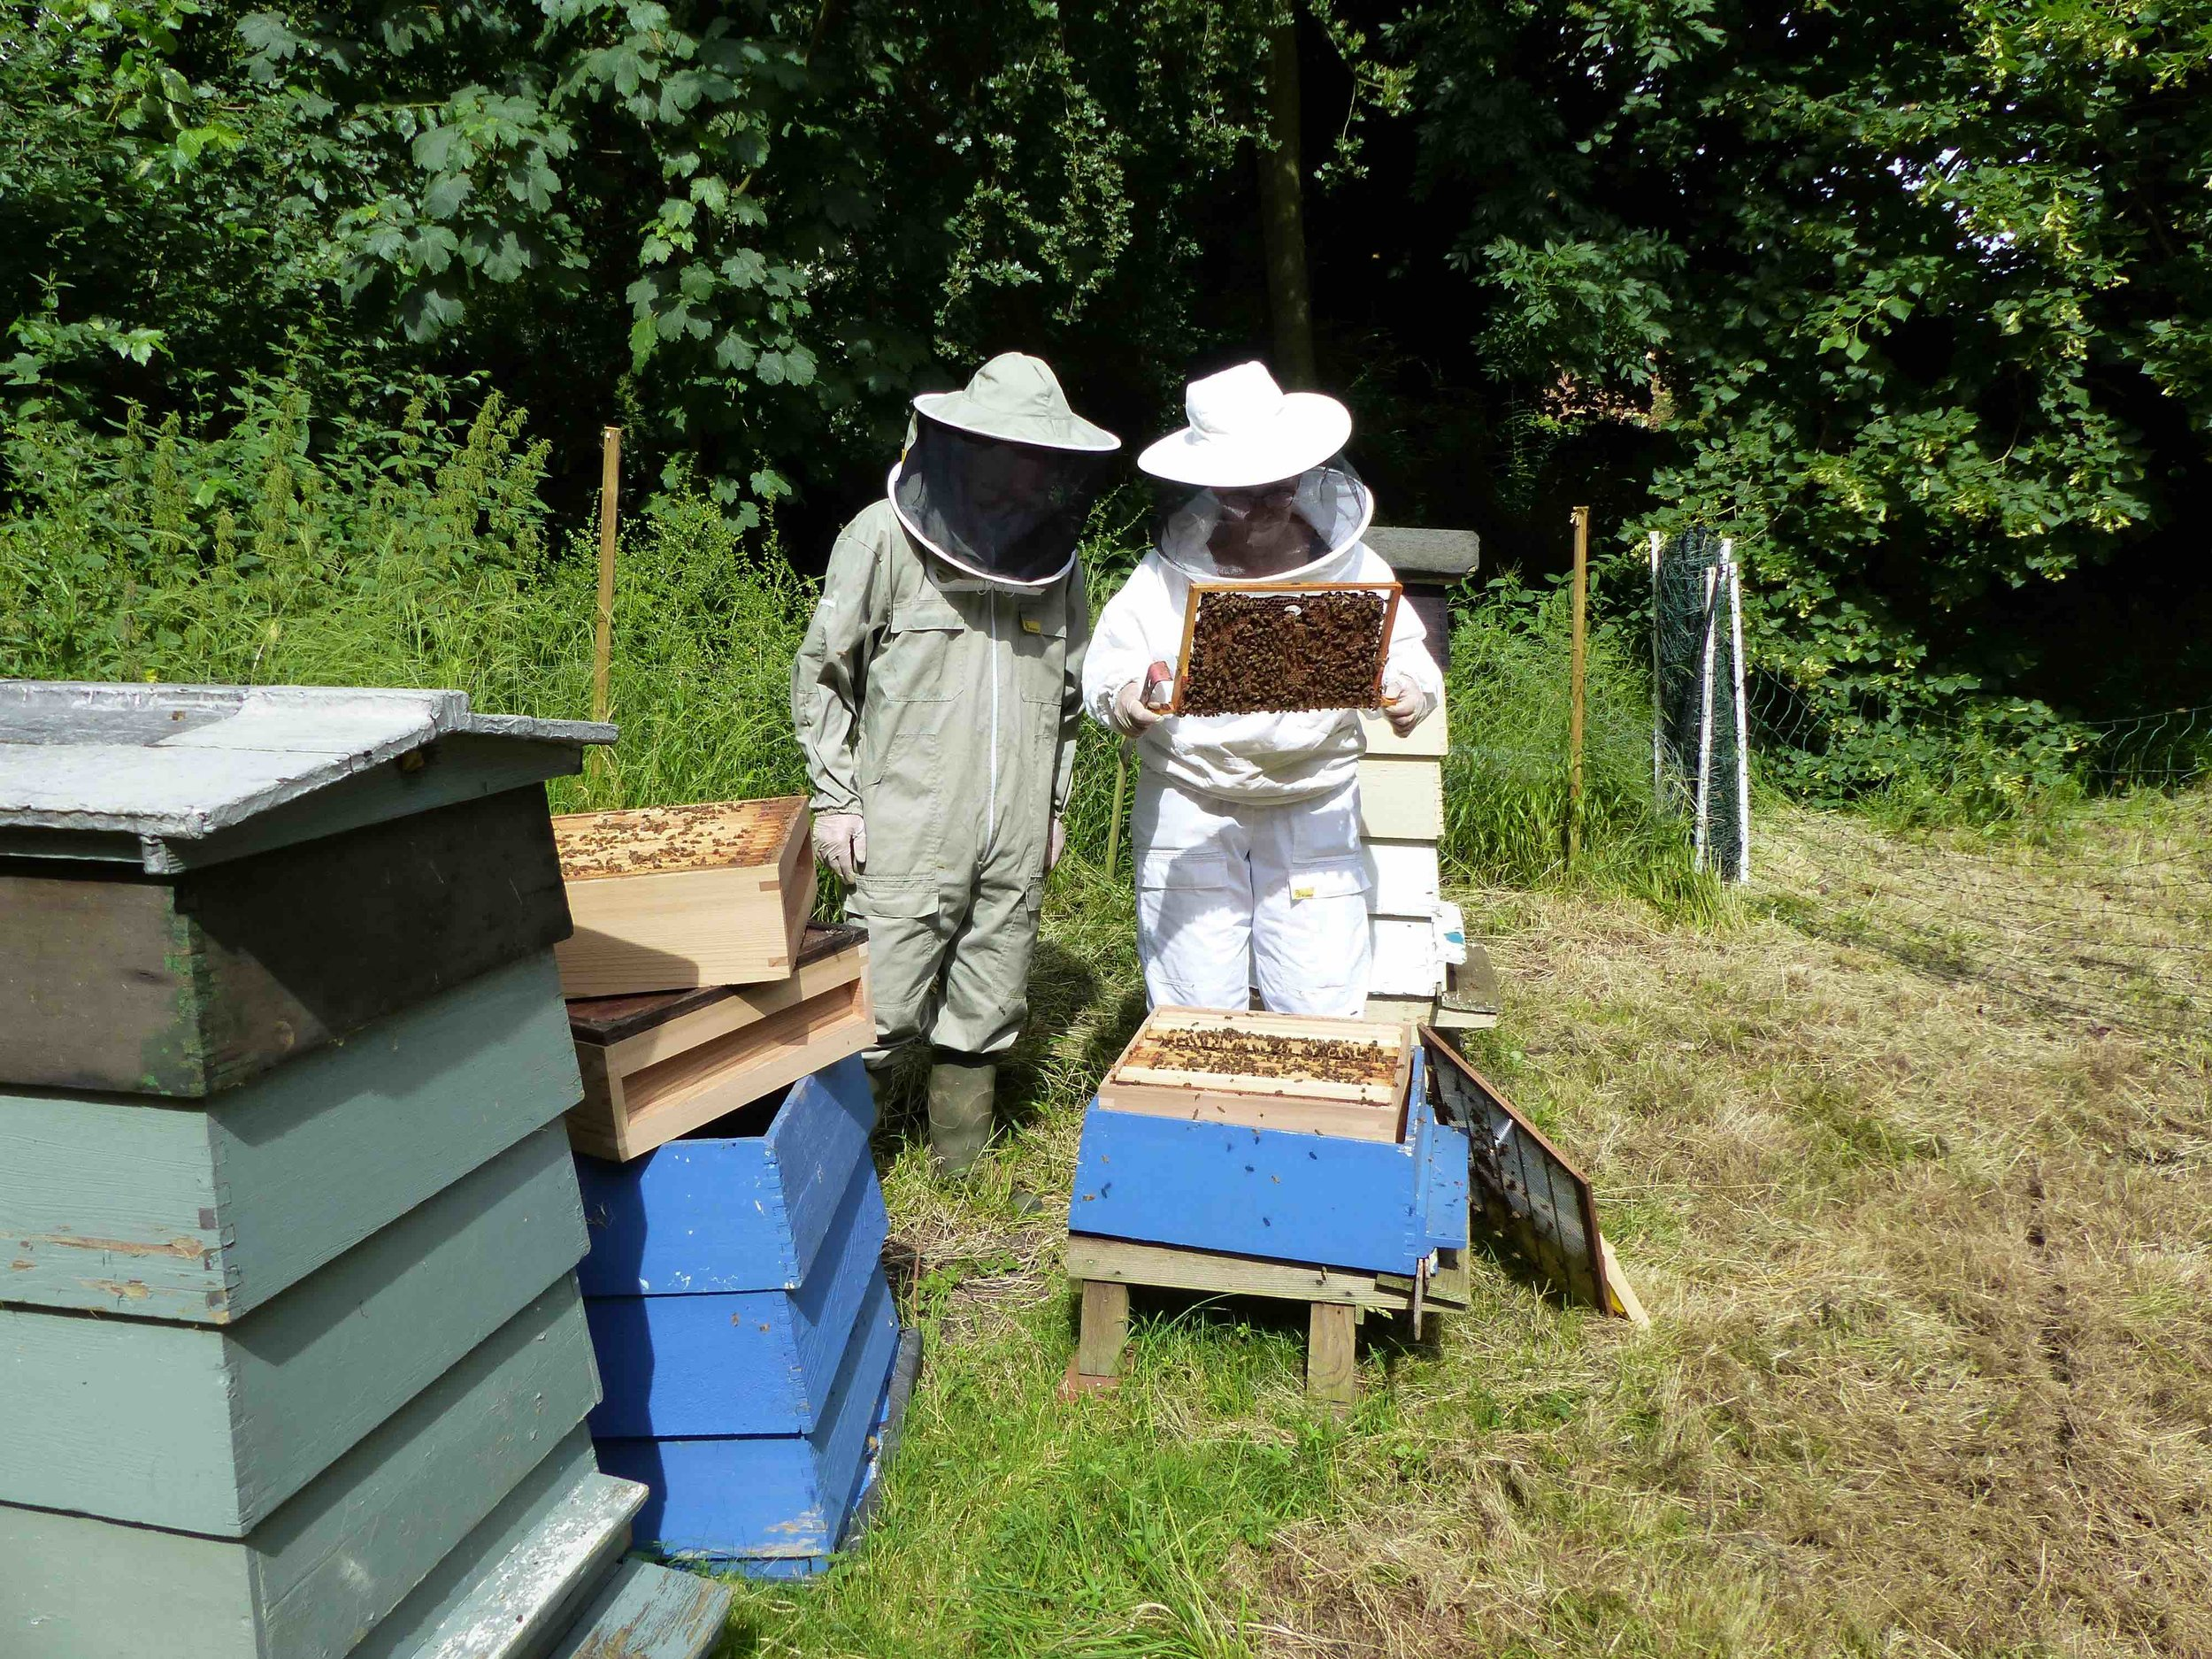 The British Bee Keeping Association - We proudly support the BBKA and their efforts to build bee populations in the UK. They are leaders in research and conservation and are passionate about inspiring new generations of Bee keepers into the wonderful world of BEEs.Find out MORE HERE www.bbka.org.uk